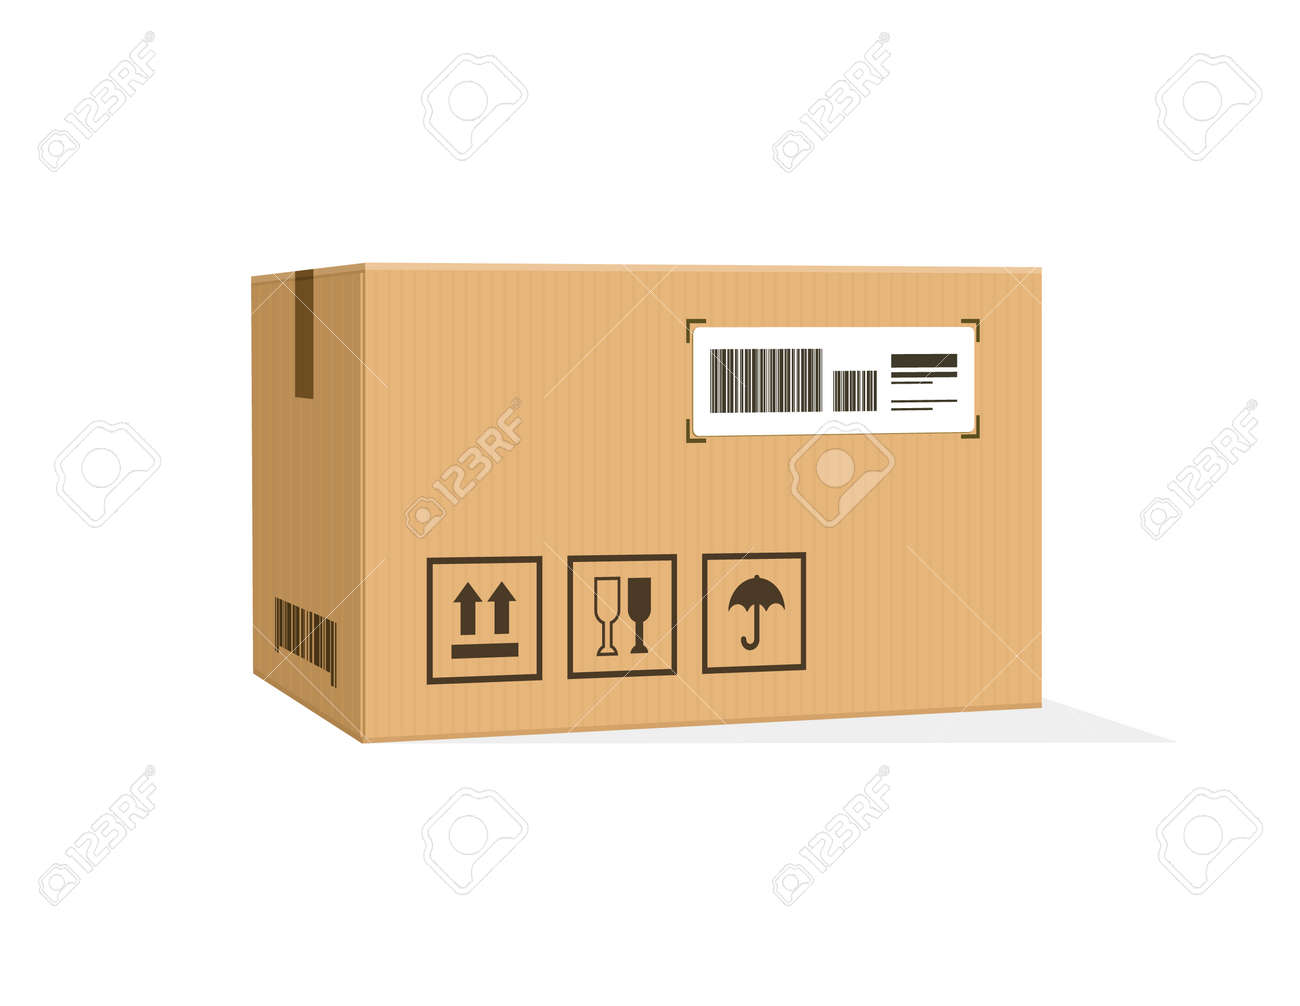 packing product icon design style packing boxes box delivery